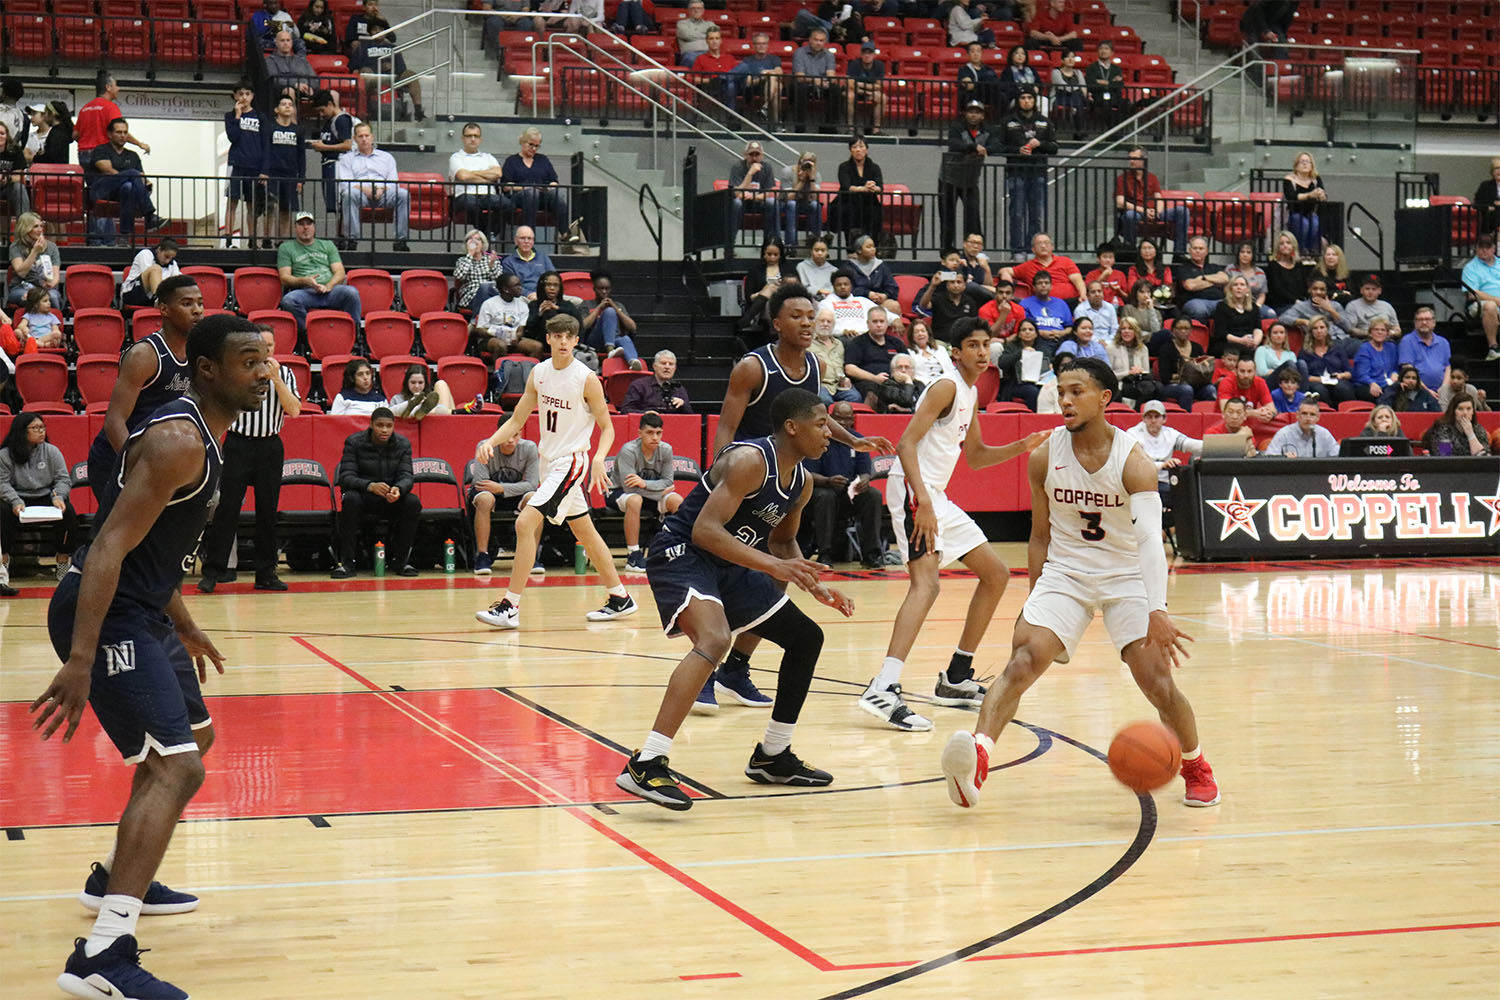 Coppell High School senior Tariq Aman searches for a gap on Tuesday against Irving Nimitz. The Cowboys defeated the Vikings, 60-39.